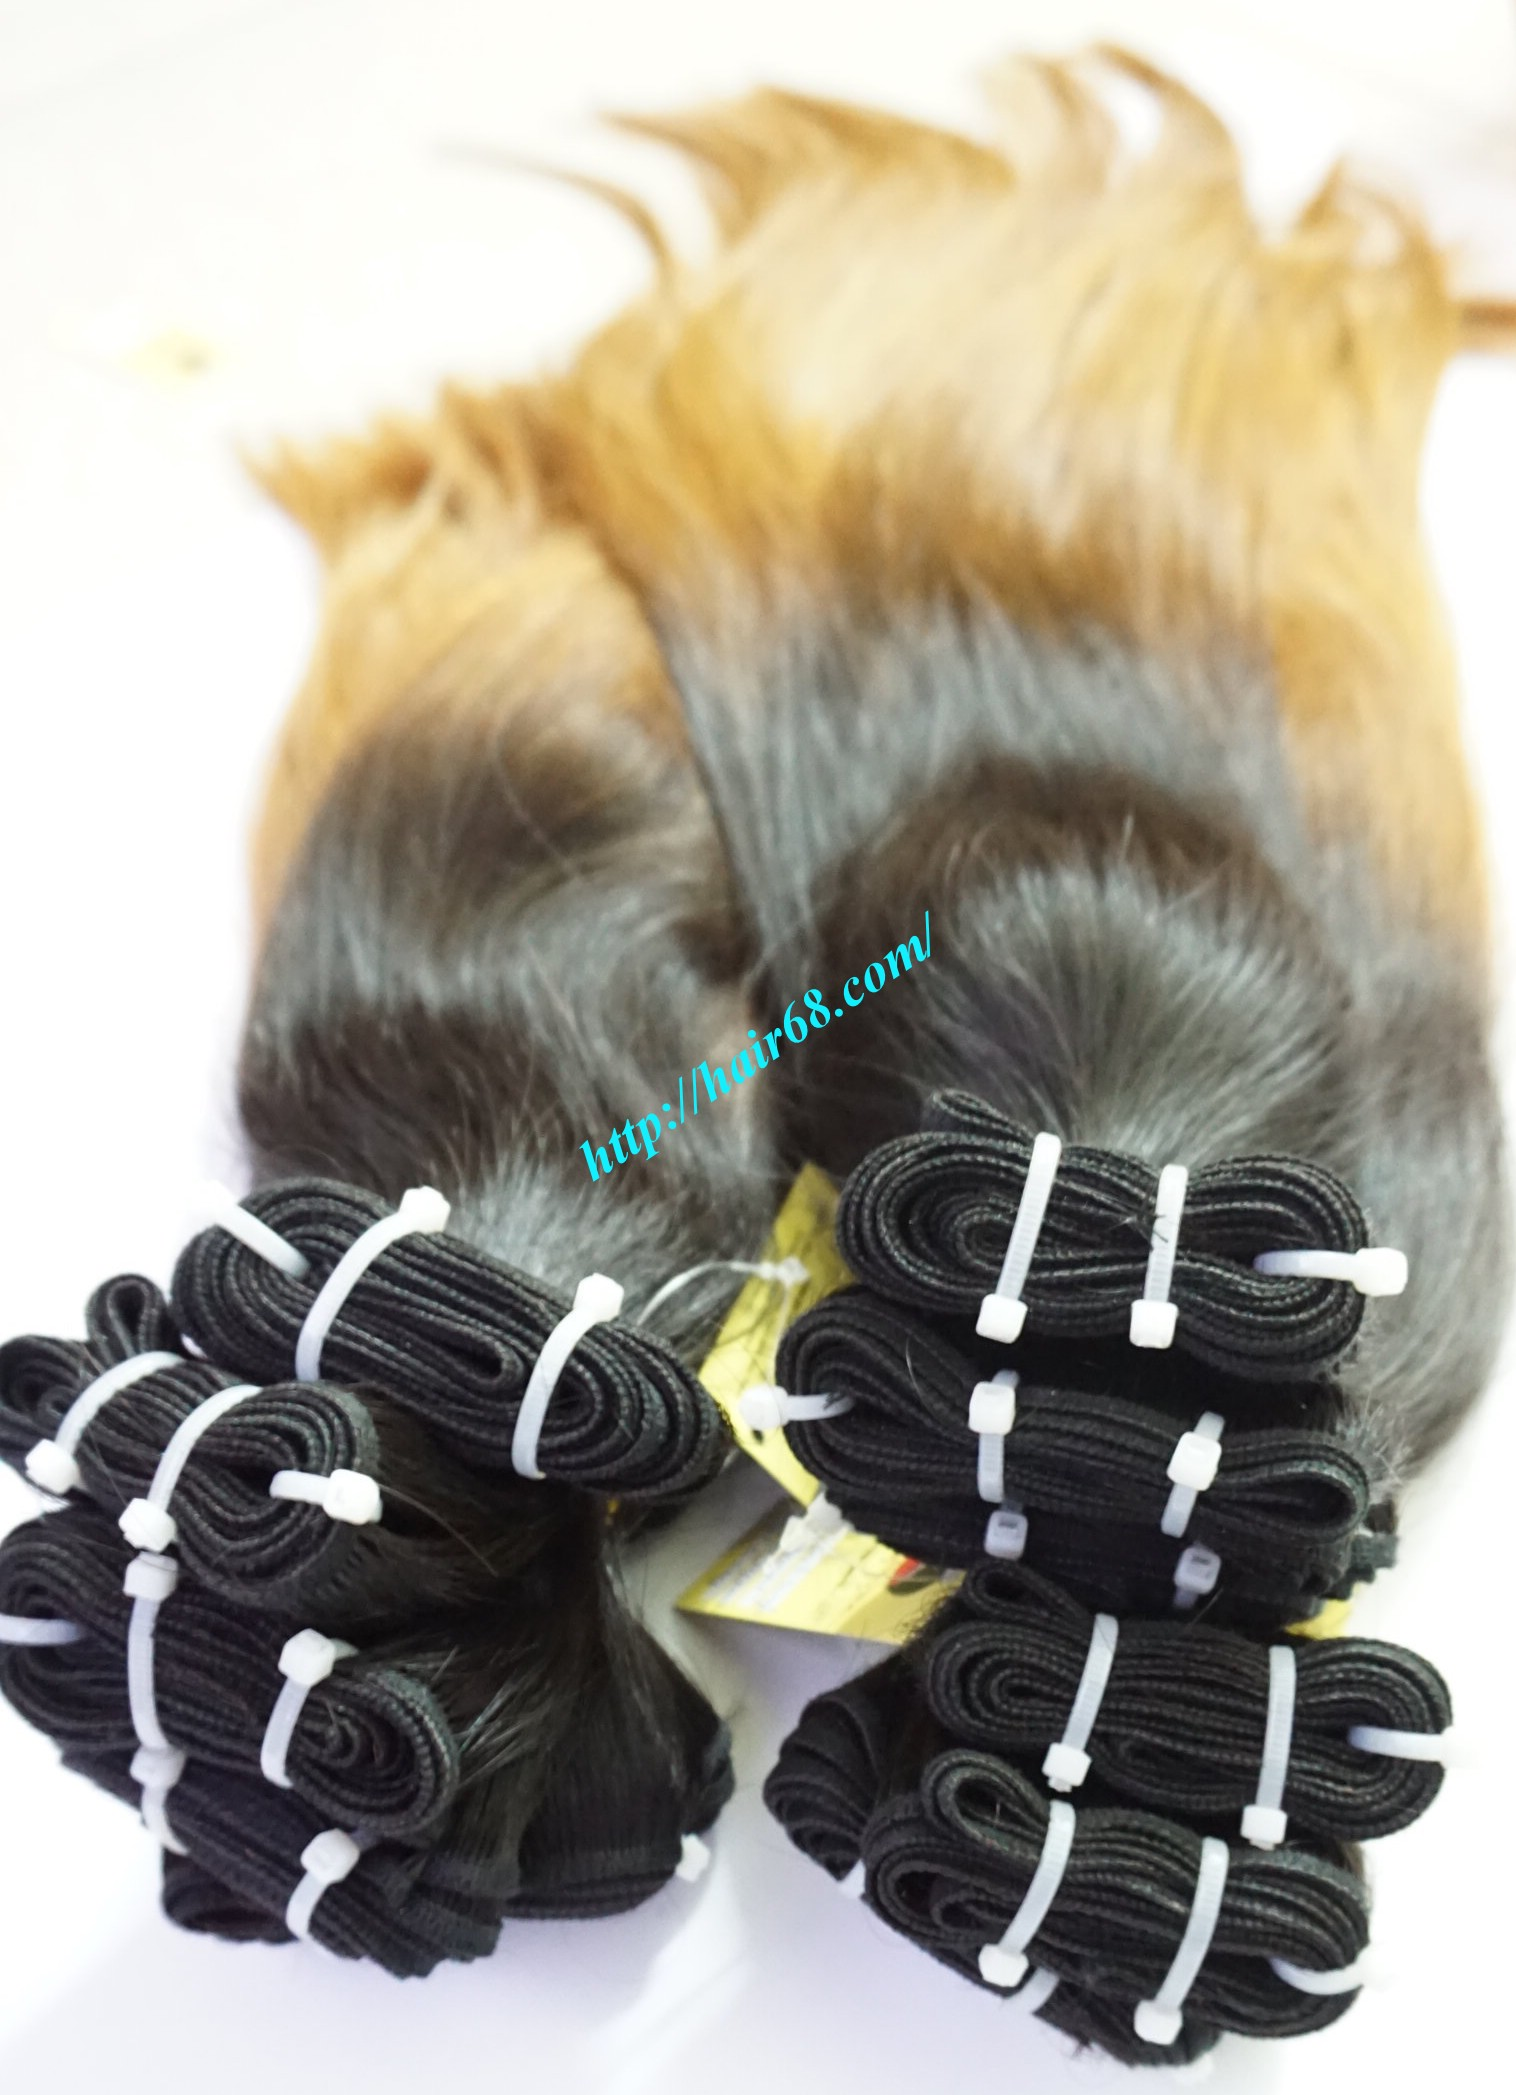 20 Inch Hair Extensions For Sale 93